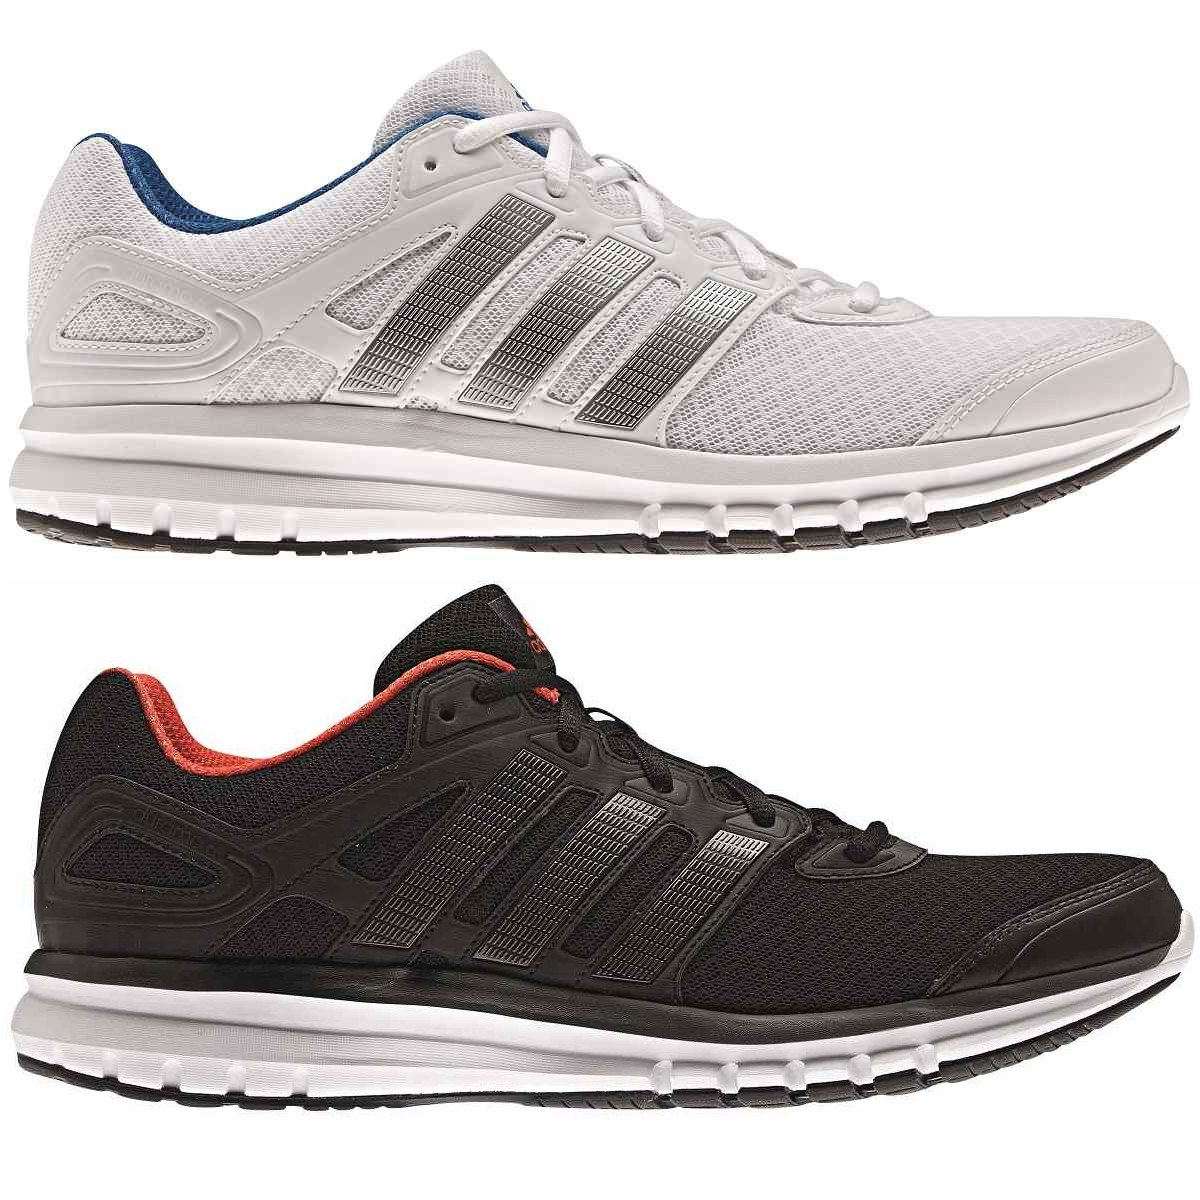 adidas sportschuhe herren adidas duramo 6 schuhe laufschuhe joggingschuhe sportschuhe herren. Black Bedroom Furniture Sets. Home Design Ideas